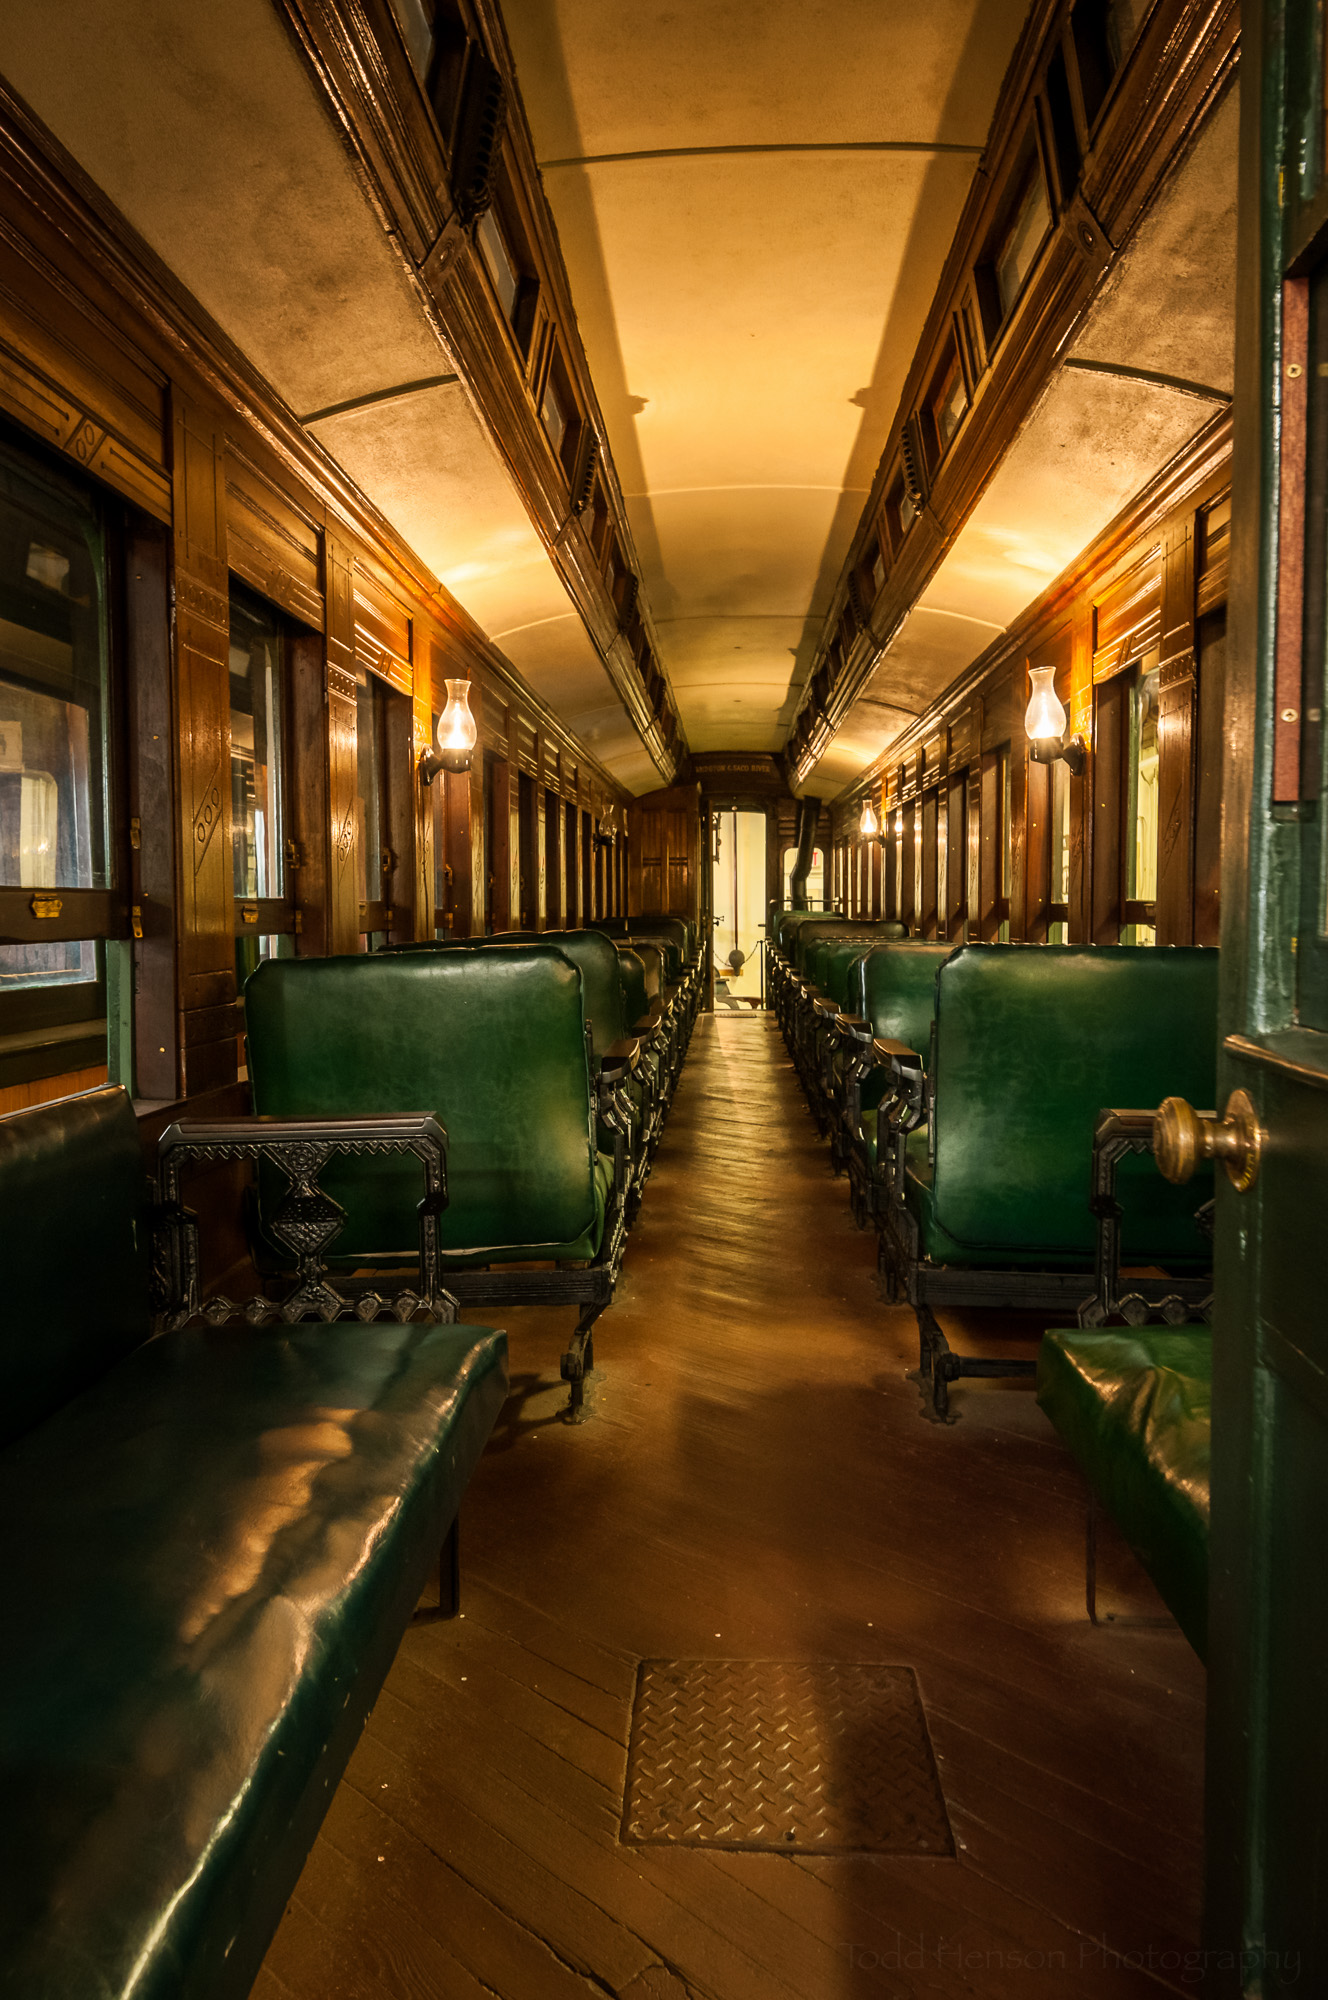 Interior of passenger train with individual seats (3 image HDR)